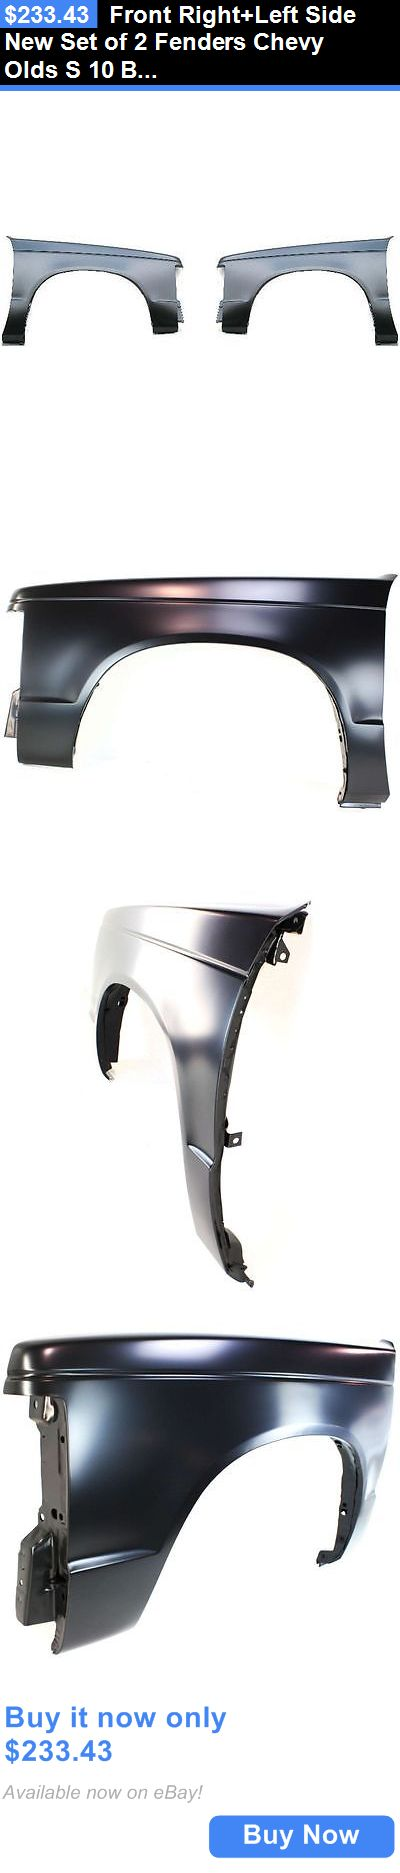 auto parts - general: Front Right+Left Side New Set Of 2 Fenders Chevy Olds S 10 Blazer Jimmy 15 Pair BUY IT NOW ONLY: $233.43